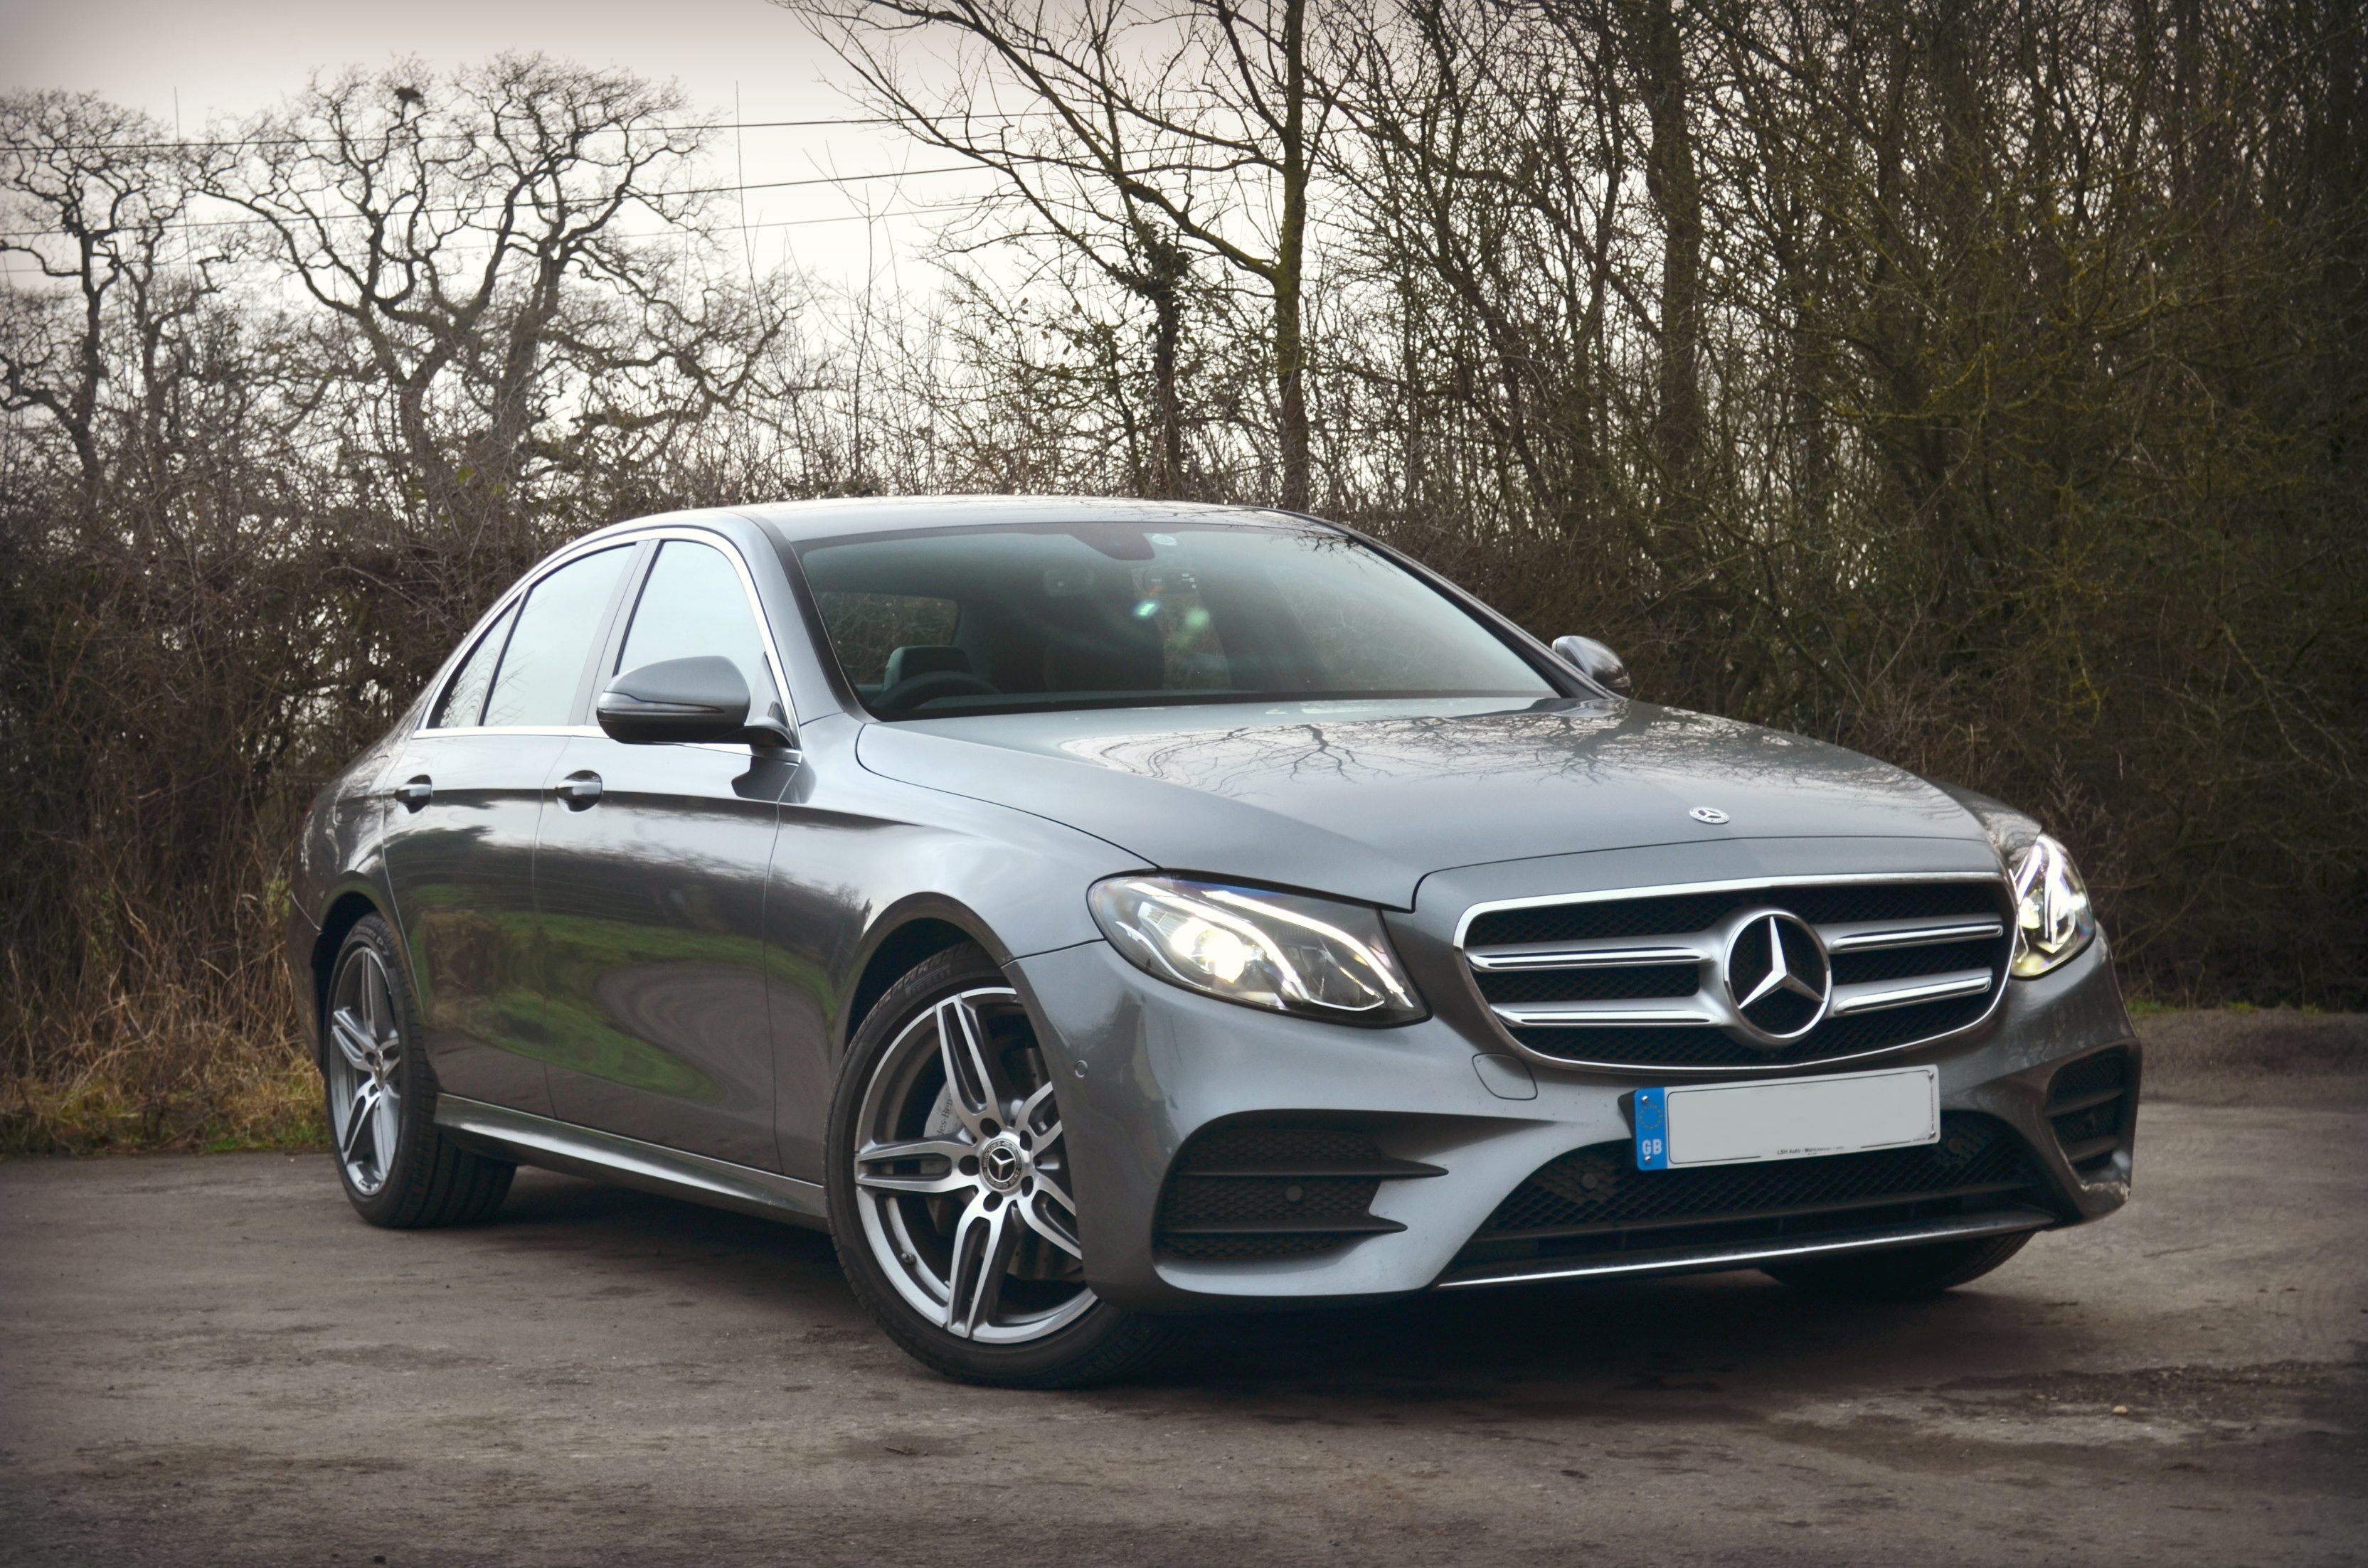 mercedes e class amg line drive south west luxury prestige sports car hire in wiltshire. Black Bedroom Furniture Sets. Home Design Ideas